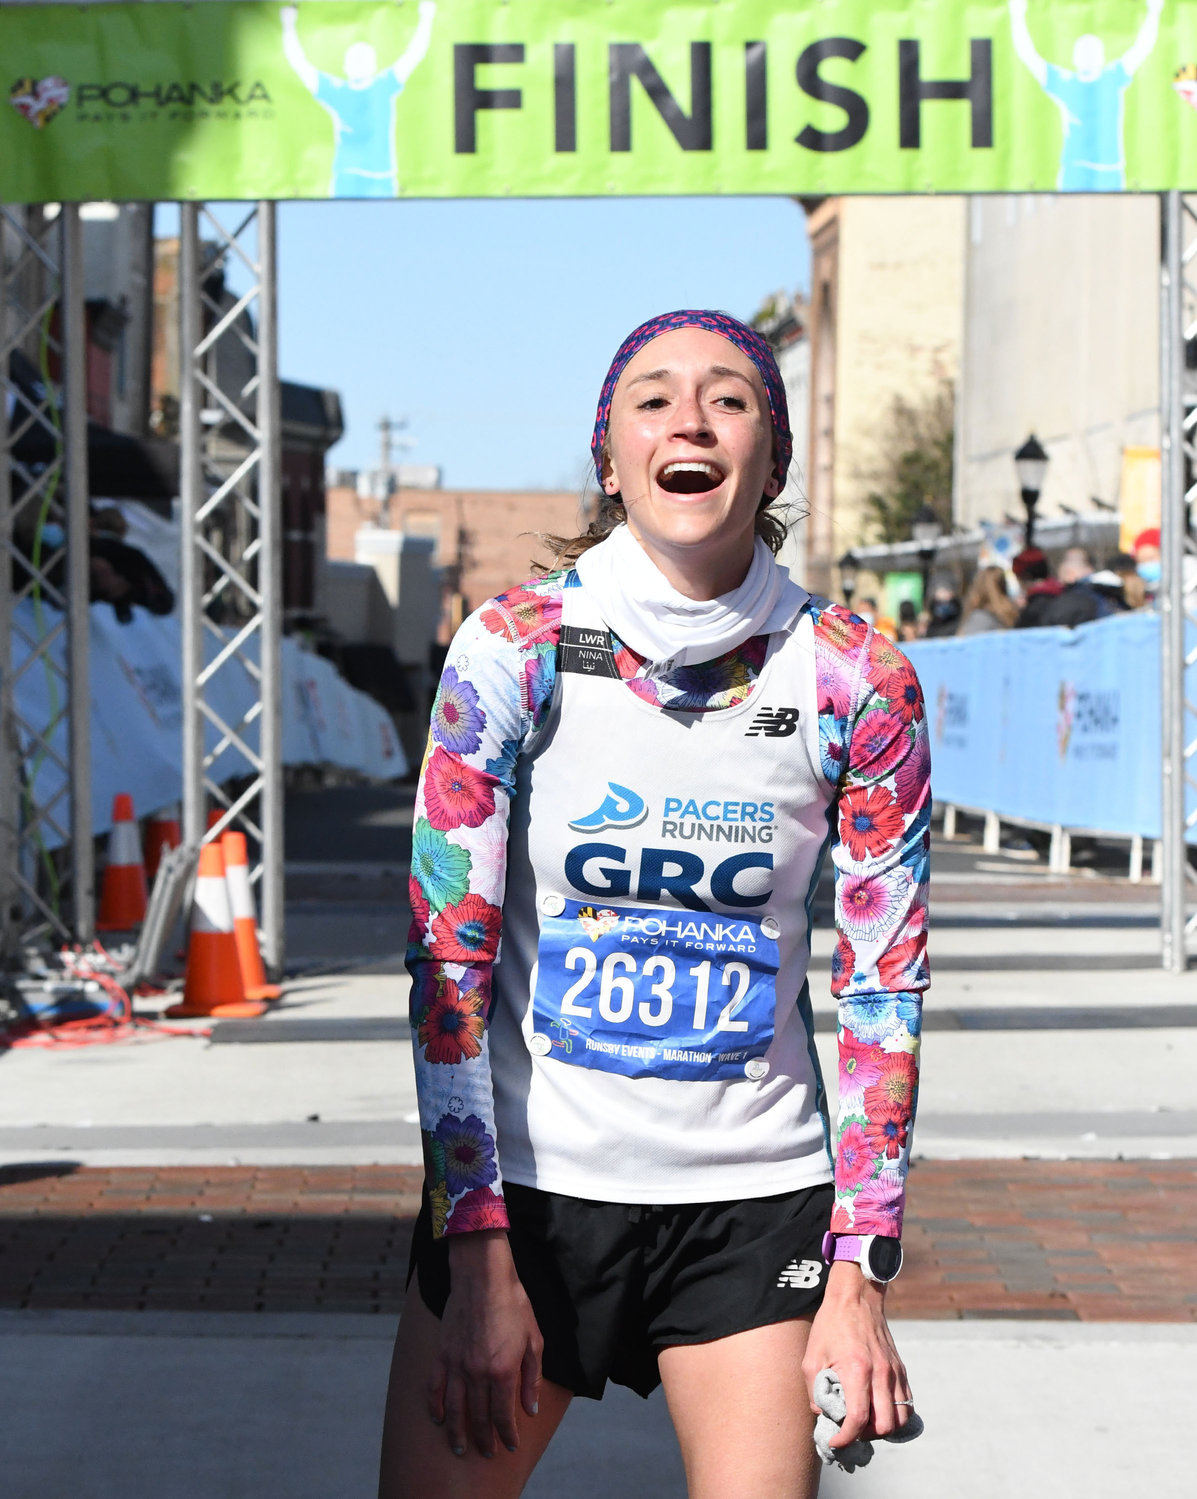 Natalie Patterson, 28, of Fredericksburg, Va., reacts at she crosses the finish line as the Female winner of the 2021 Salisbury Marathon.